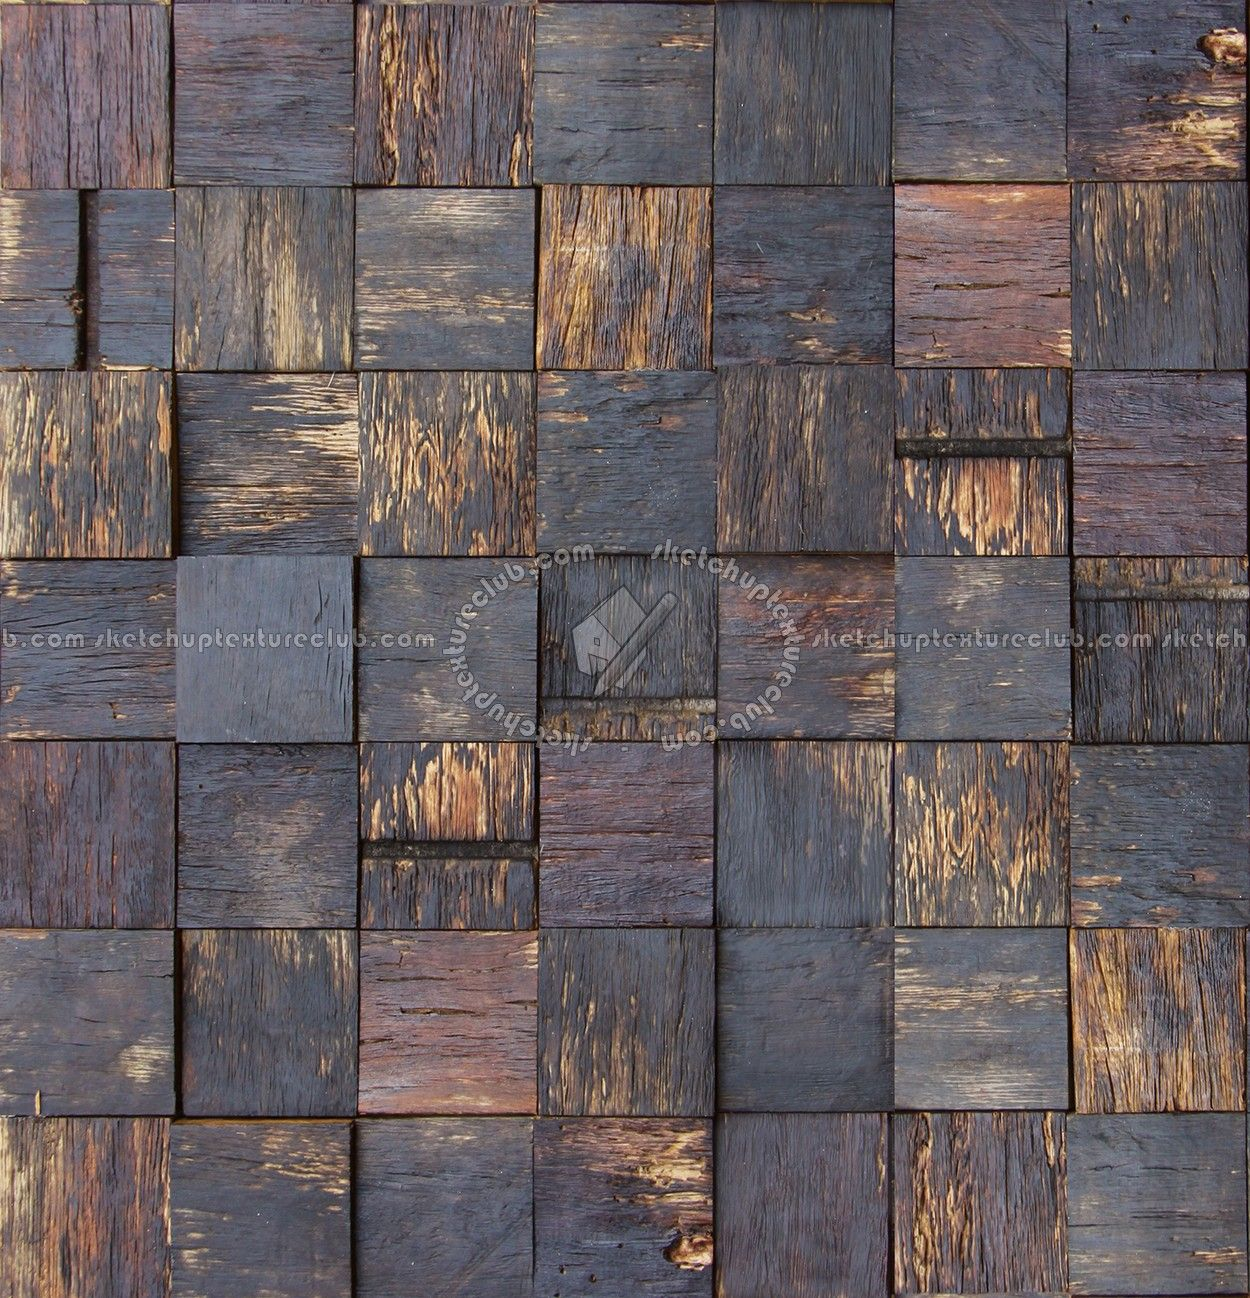 Texture Seamless | Old Wood Wall Panels Texture Seamless 04568 | Textures    ARCHITECTURE   WOOD   Wood Panels